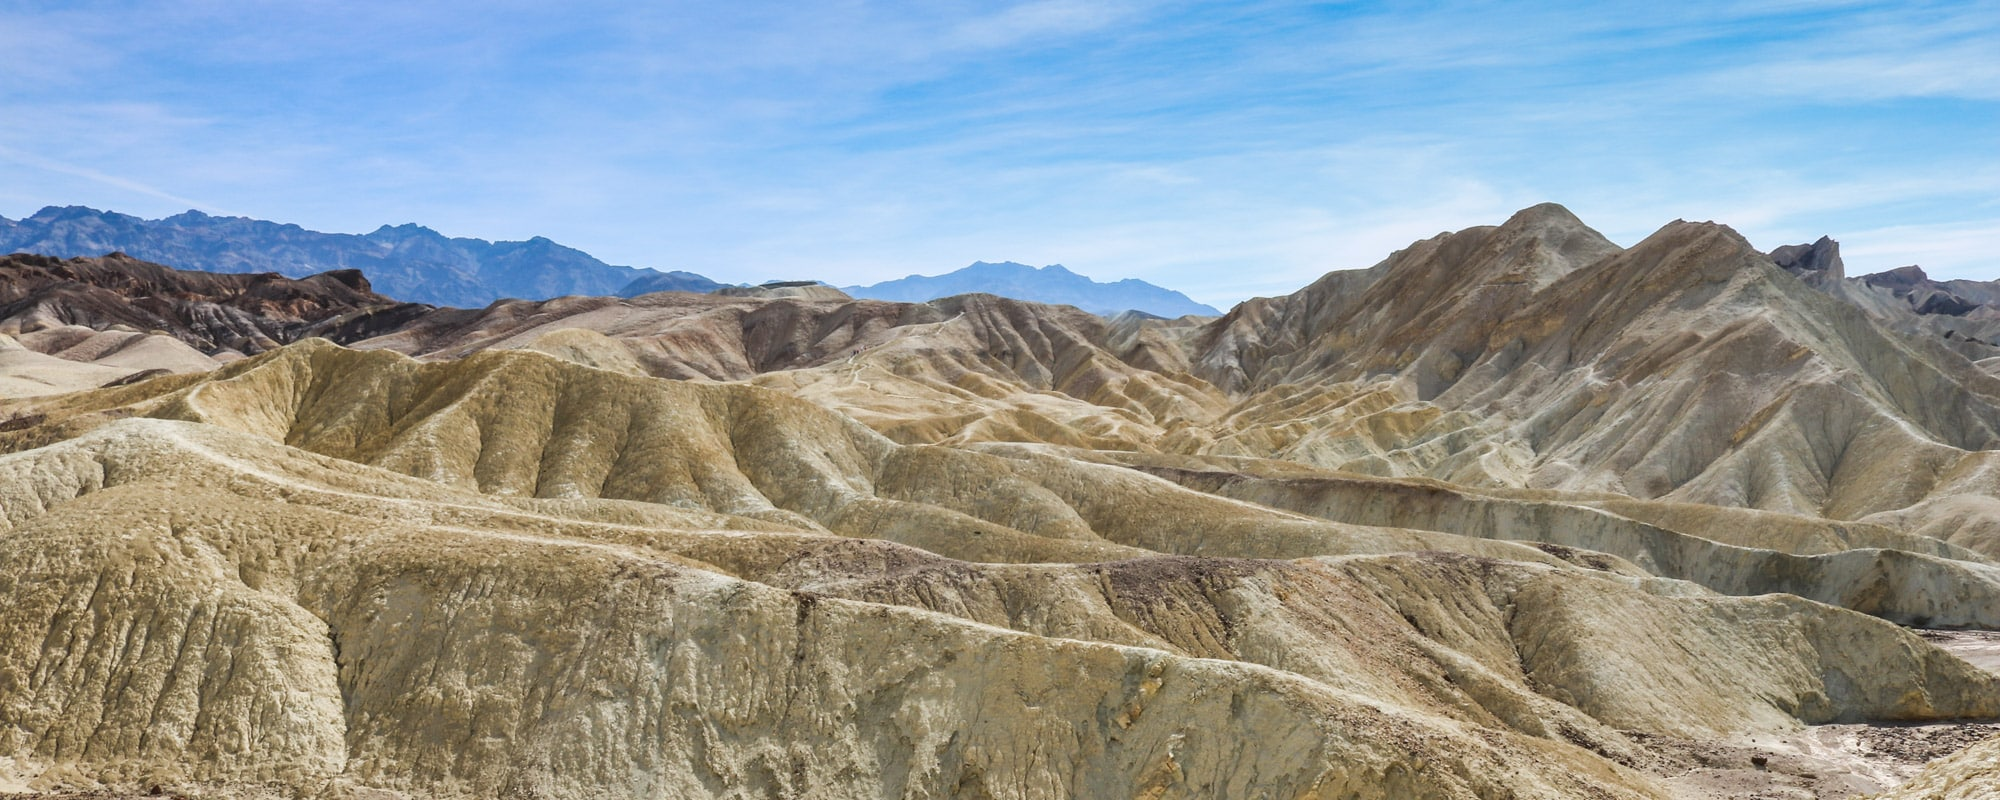 Death Valley National Park, California - Travel  Experience